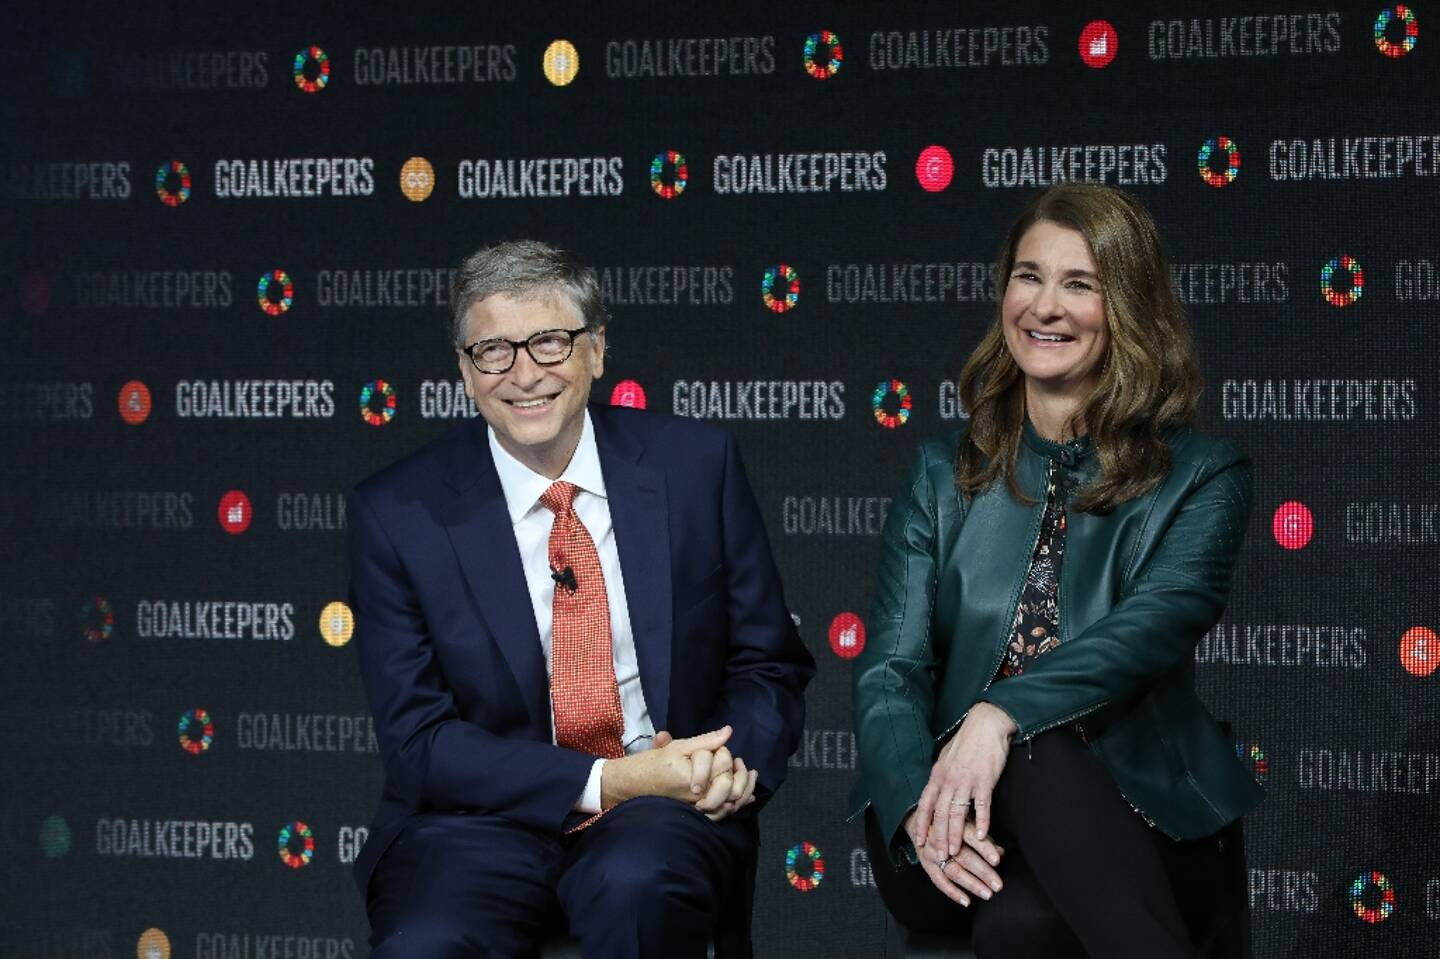 Bill et Melinda Gates lors d'un événement au Lincoln Center, à New York, le 26 septembre 2018